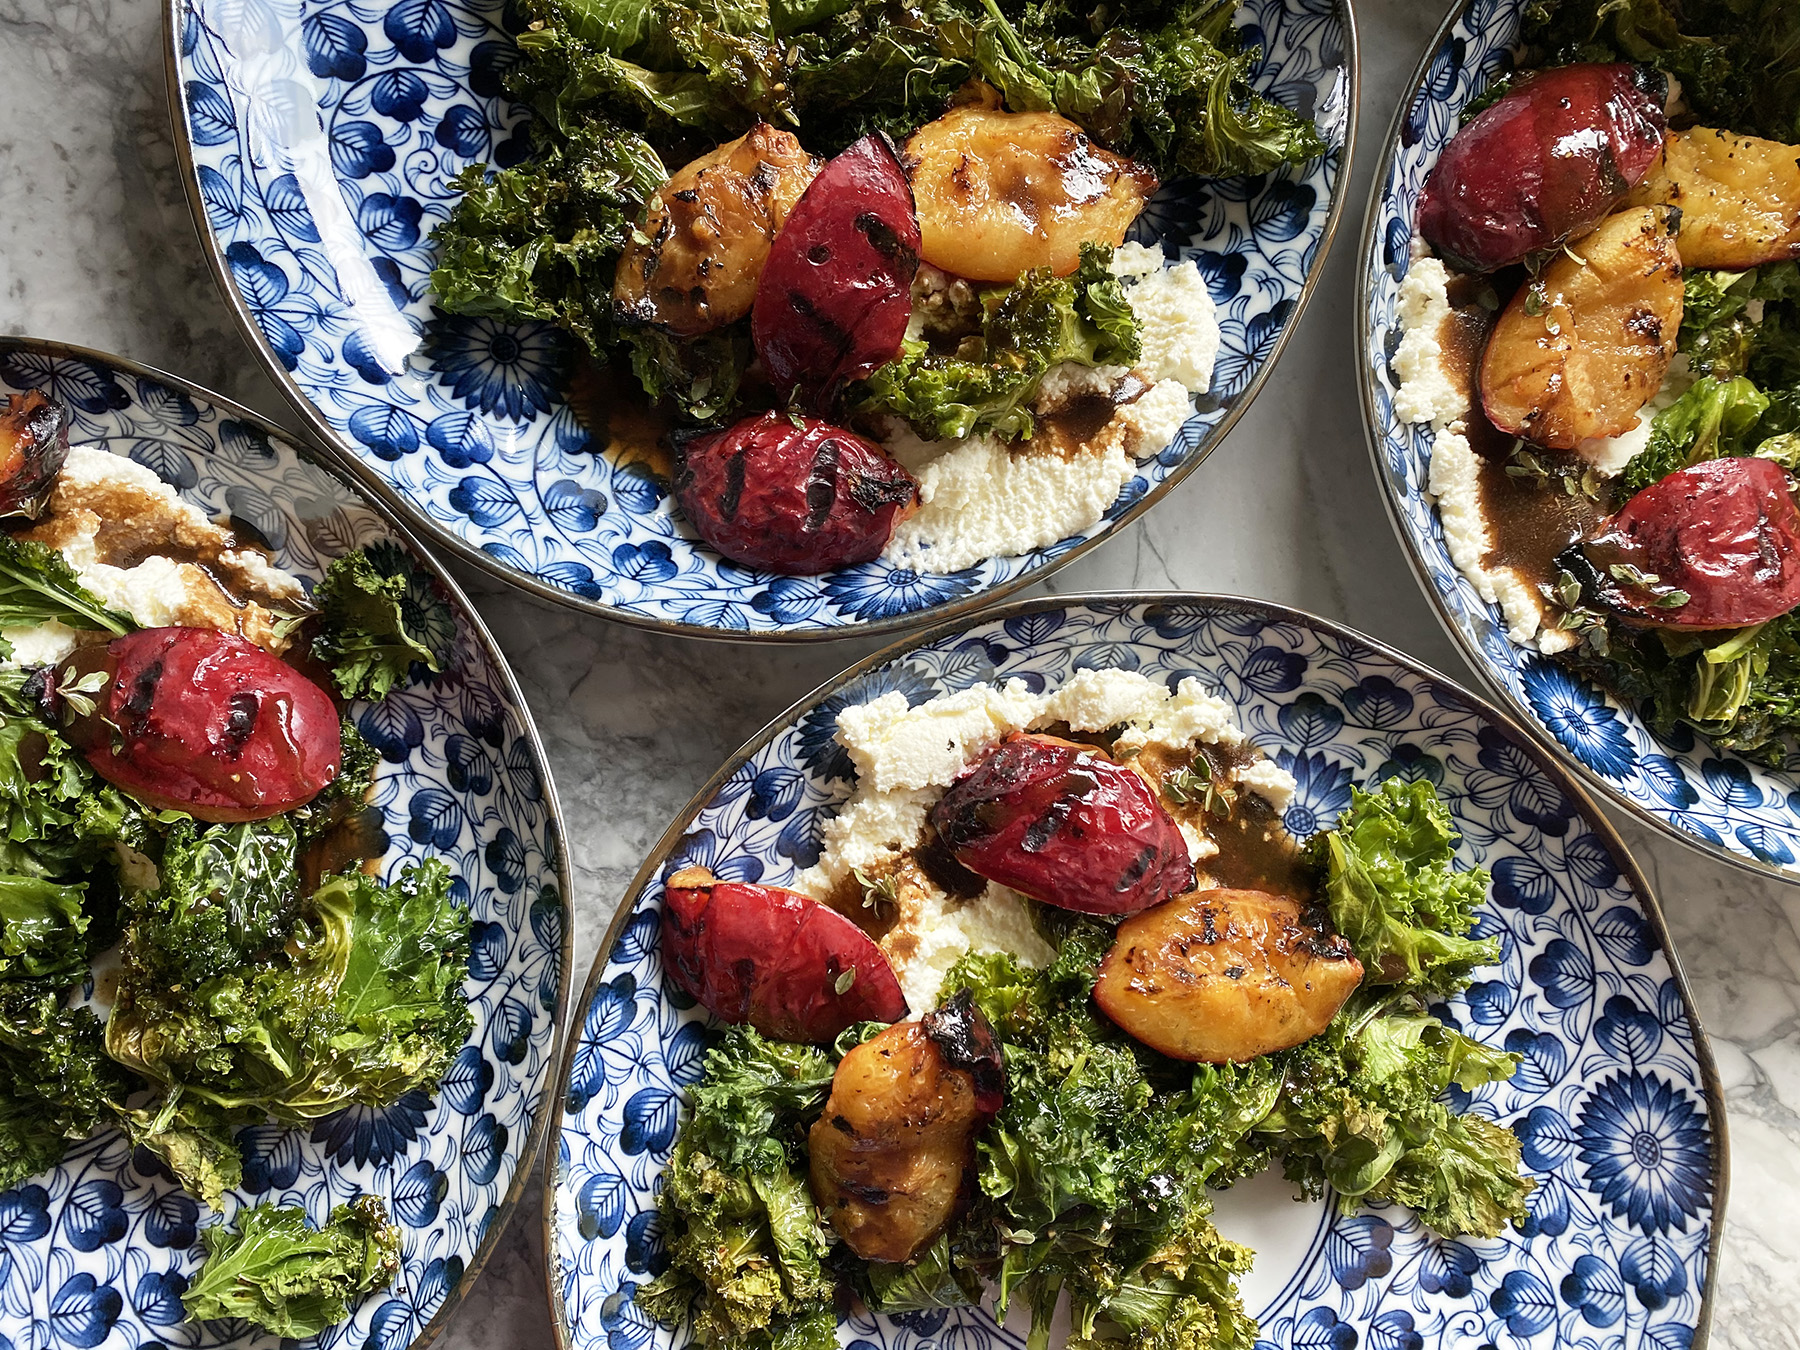 Grilled Kale and Plum Salad (on Ricotta)